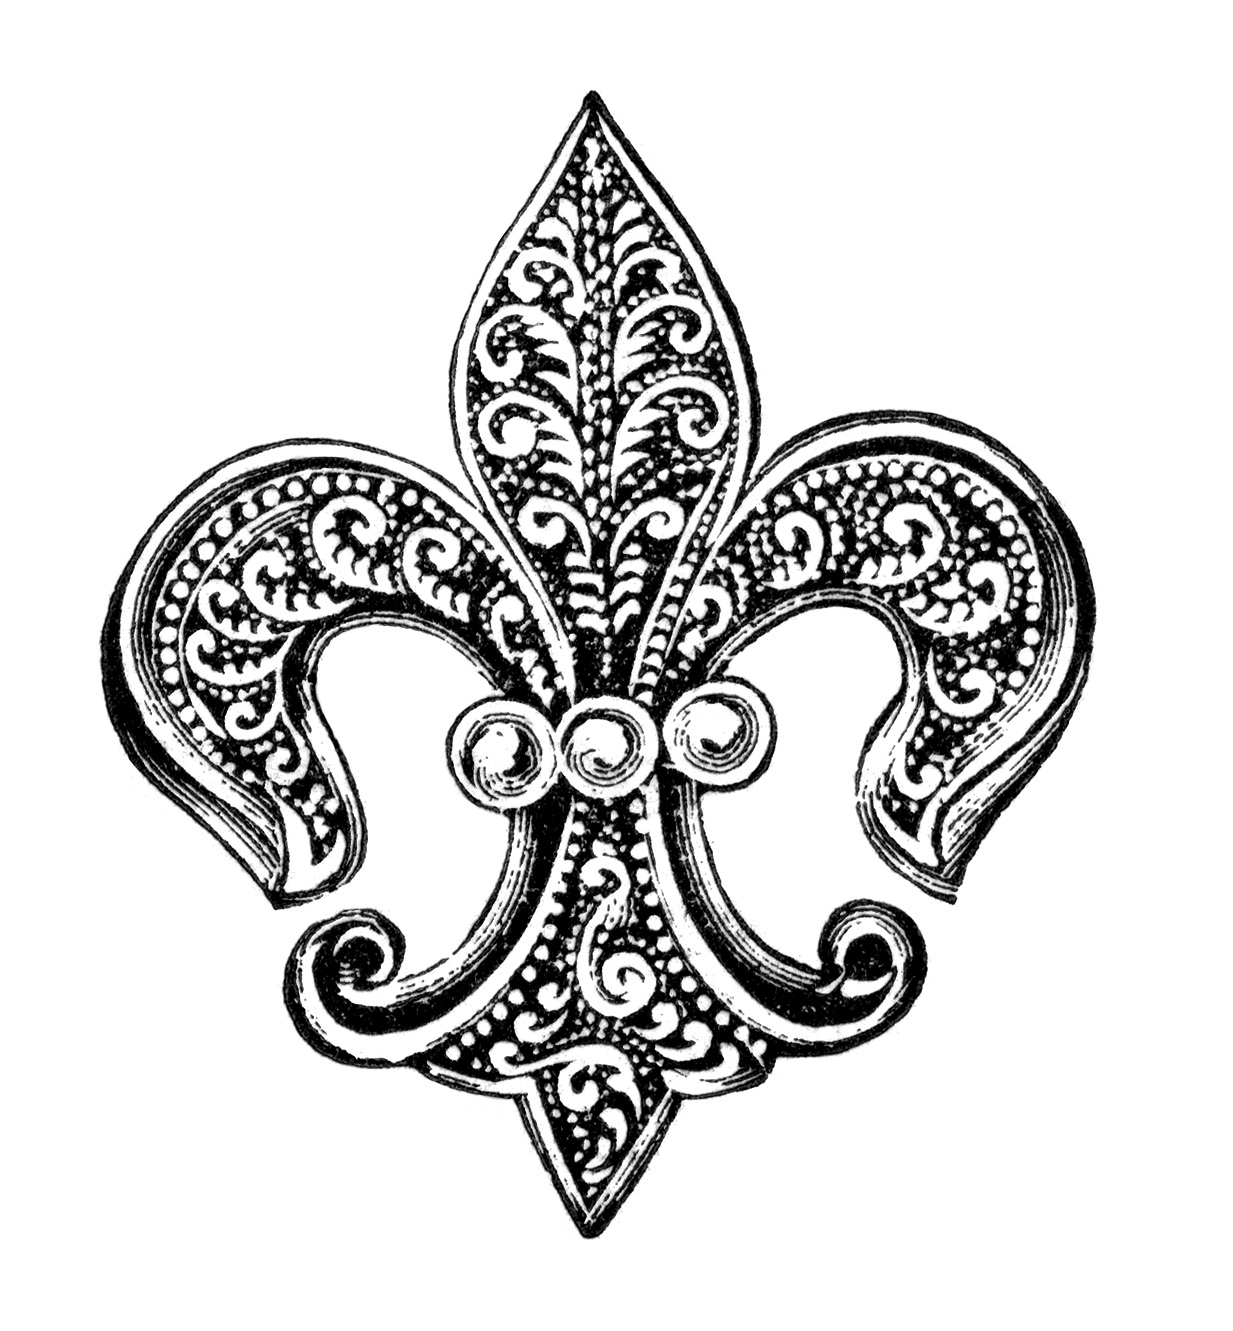 Free clipart fleur de lis clip art black and white library Free Fleur De Lis, Download Free Clip Art, Free Clip Art on Clipart ... clip art black and white library